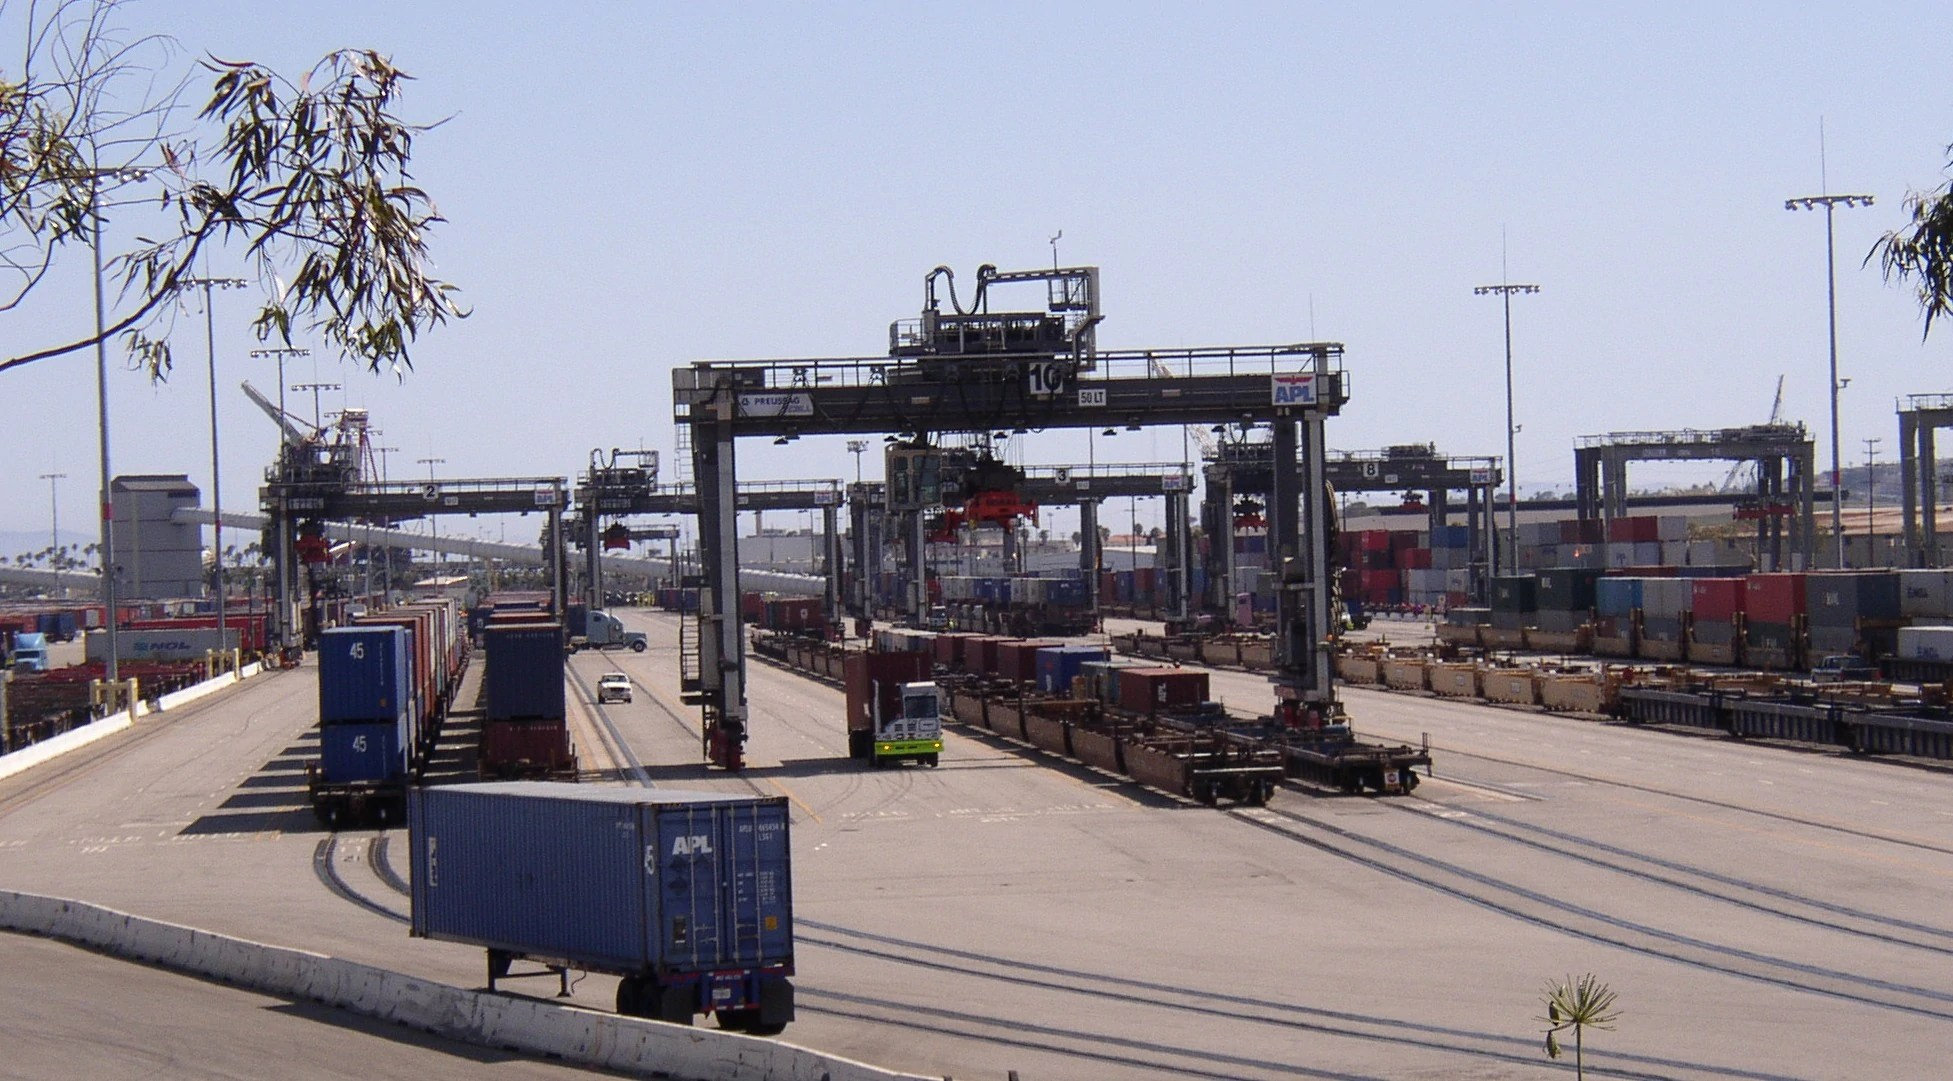 Containerdienst Rostock Intermodal Freight Transport Tractor And Construction